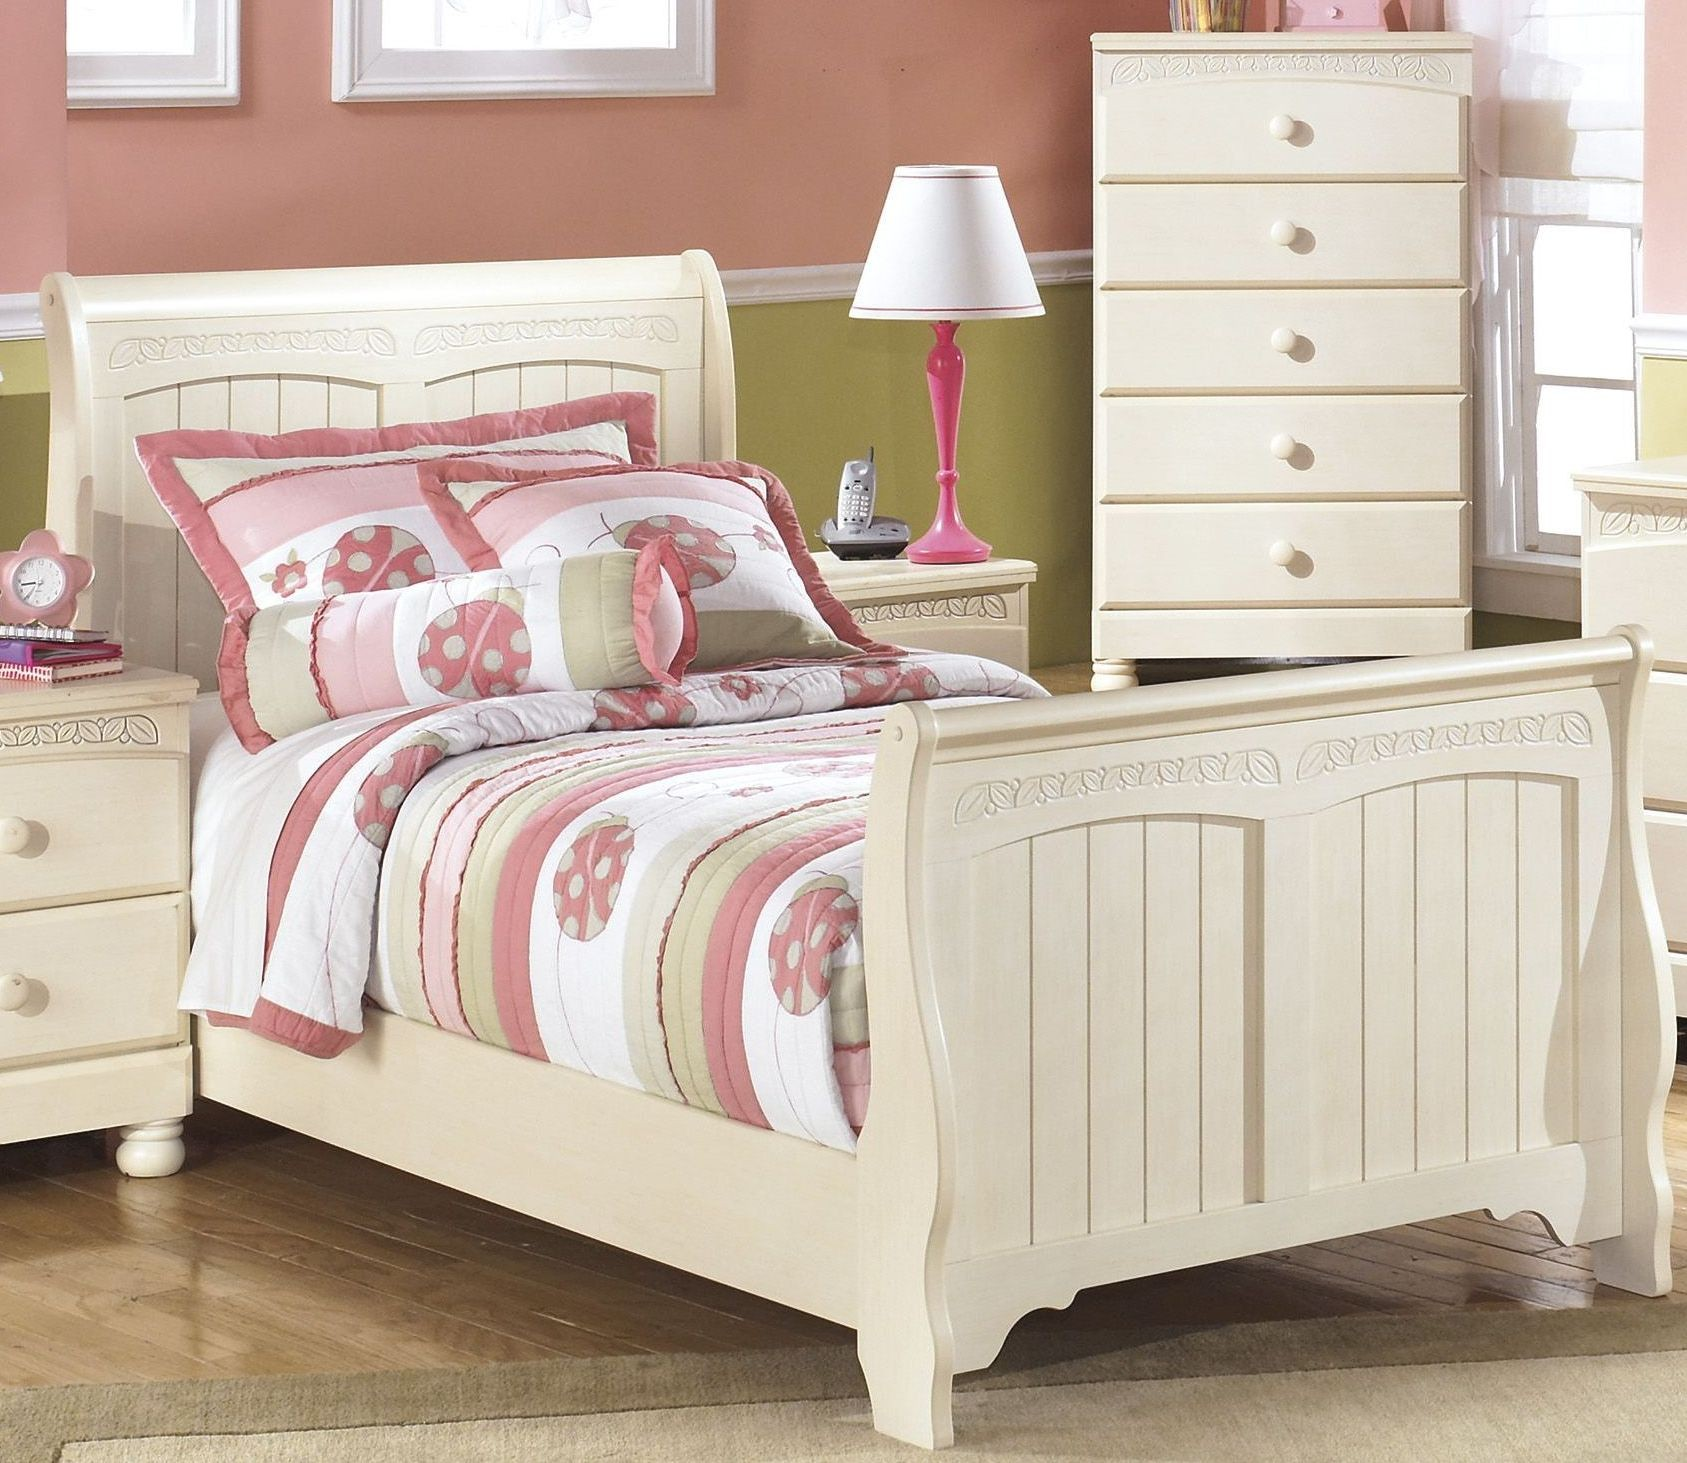 Cottage Retreat Youth Sleigh Bedroom Set From Ashley B213 62 63 82 Coleman Furniture